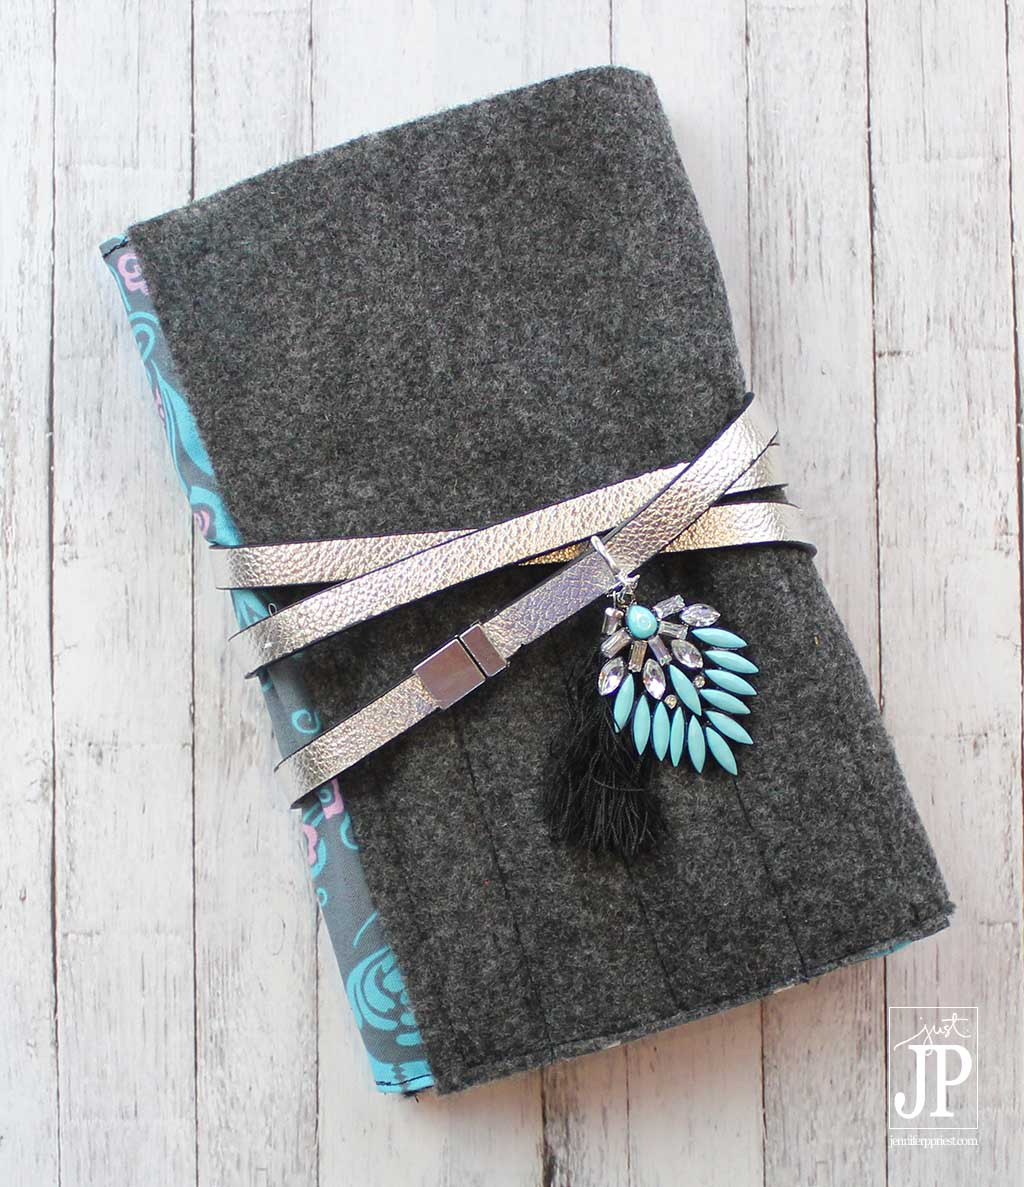 MAKE THIS - DIY Notebook Cover with secret pocket for pads! Perfect for teens and college girls when they have period and for every day. VIDEO TUTORIAL!